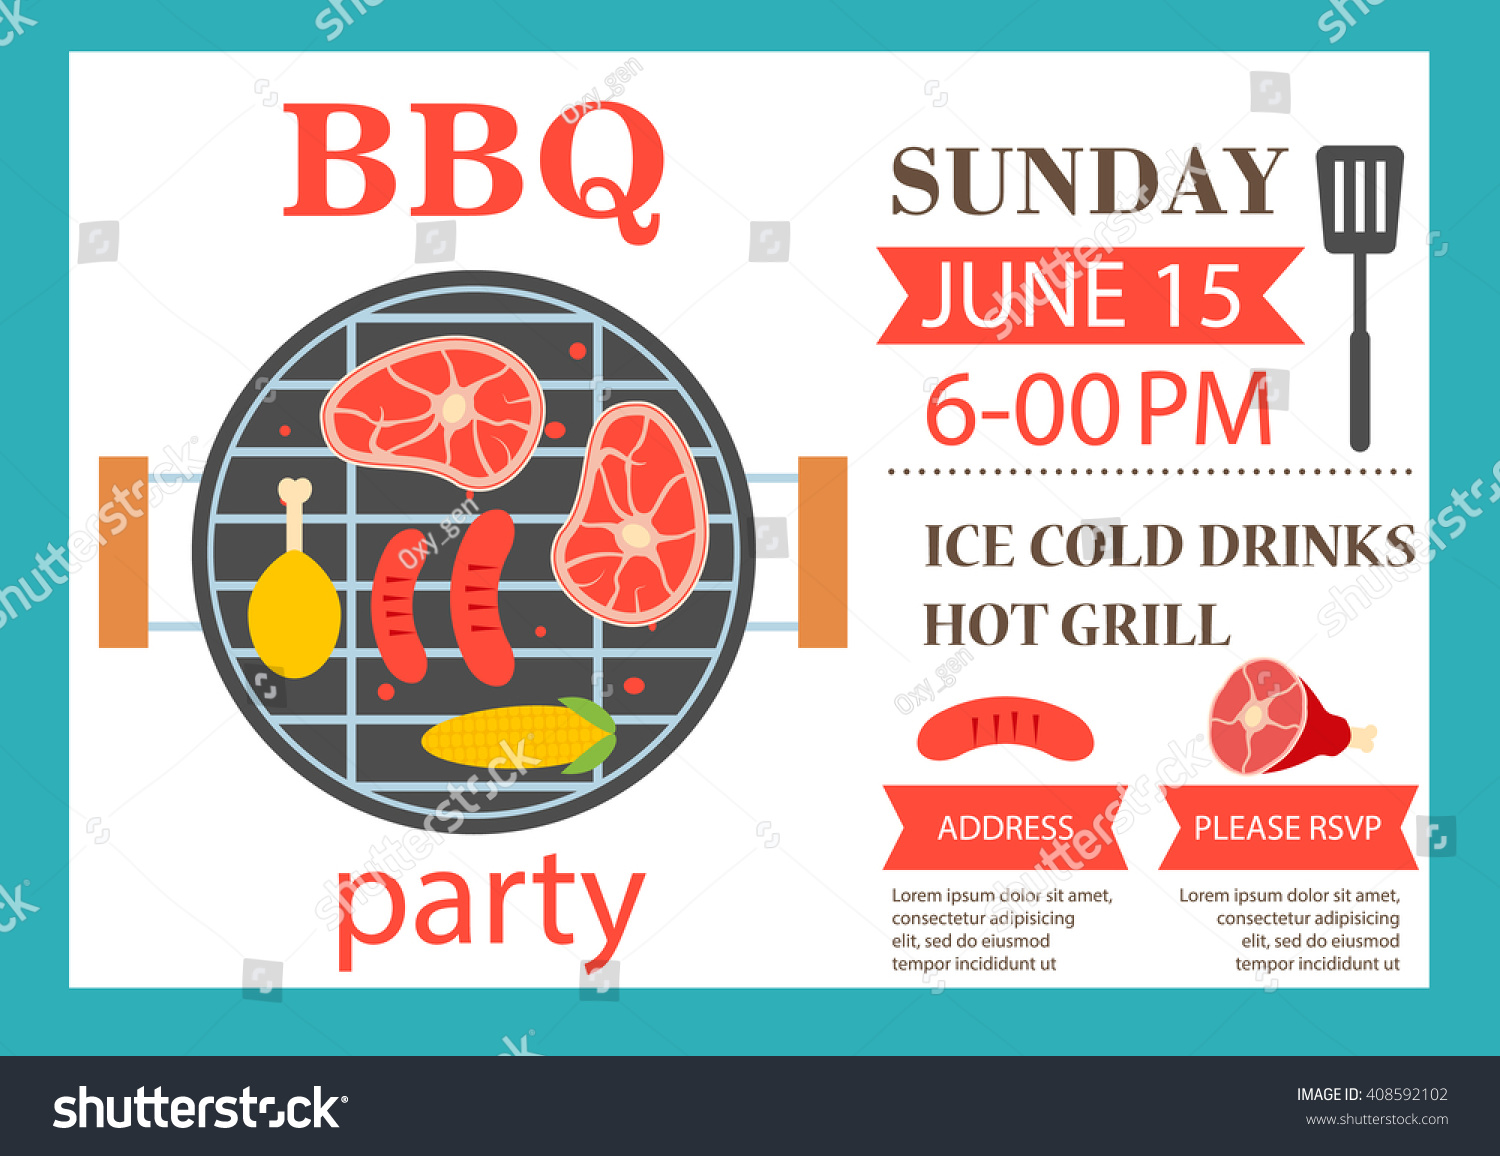 Bbq Party Invitation Barbecue Invitation Flyer Vector – Party Invitation Flyer